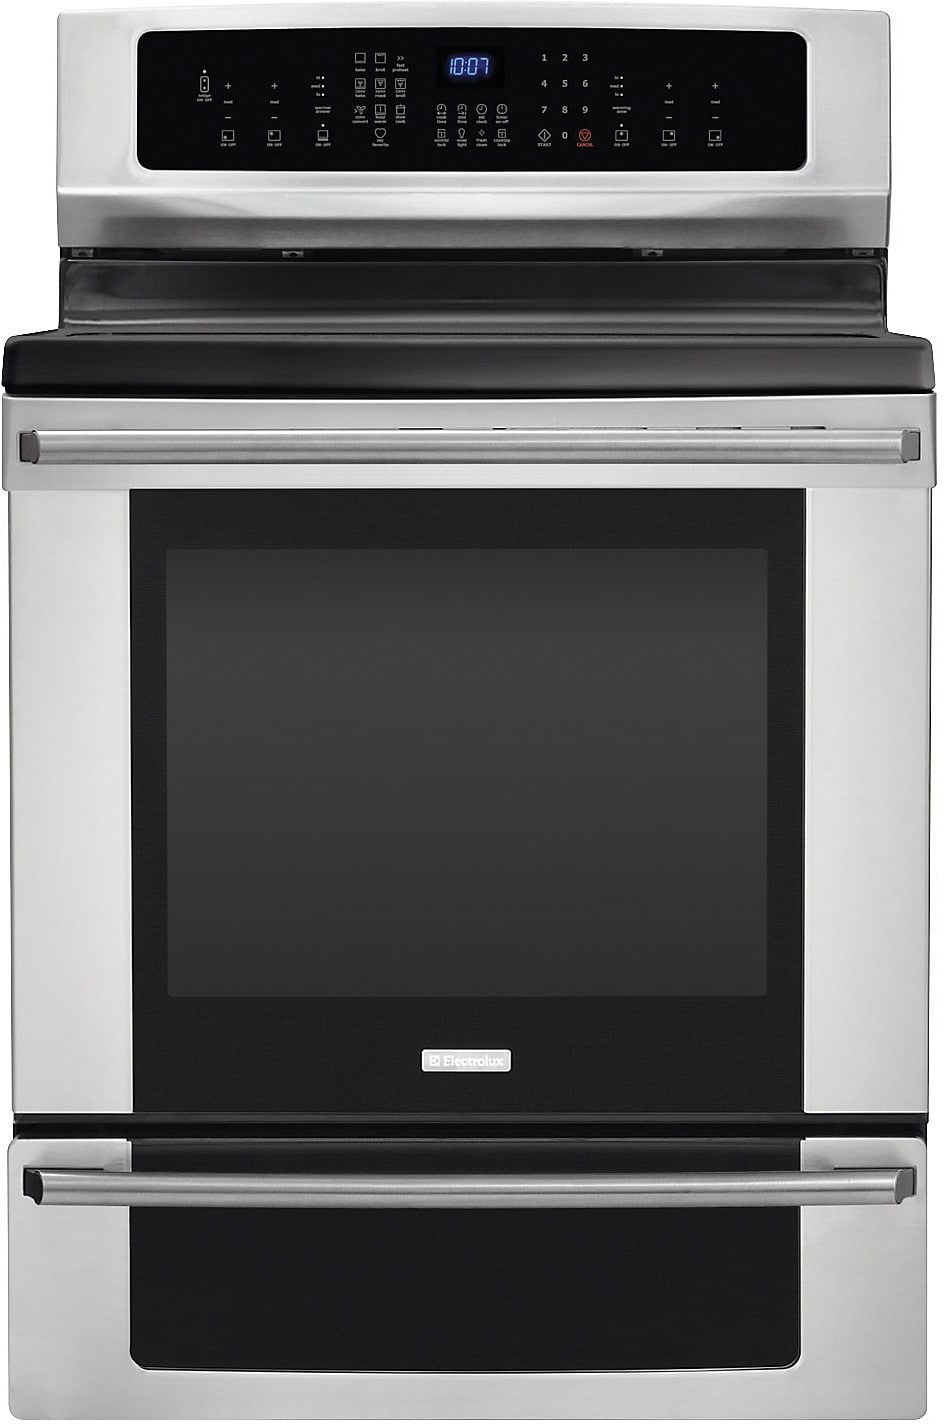 "Electrolux 30"" Electric Range with Induction Cooktop - Stainless Steel"